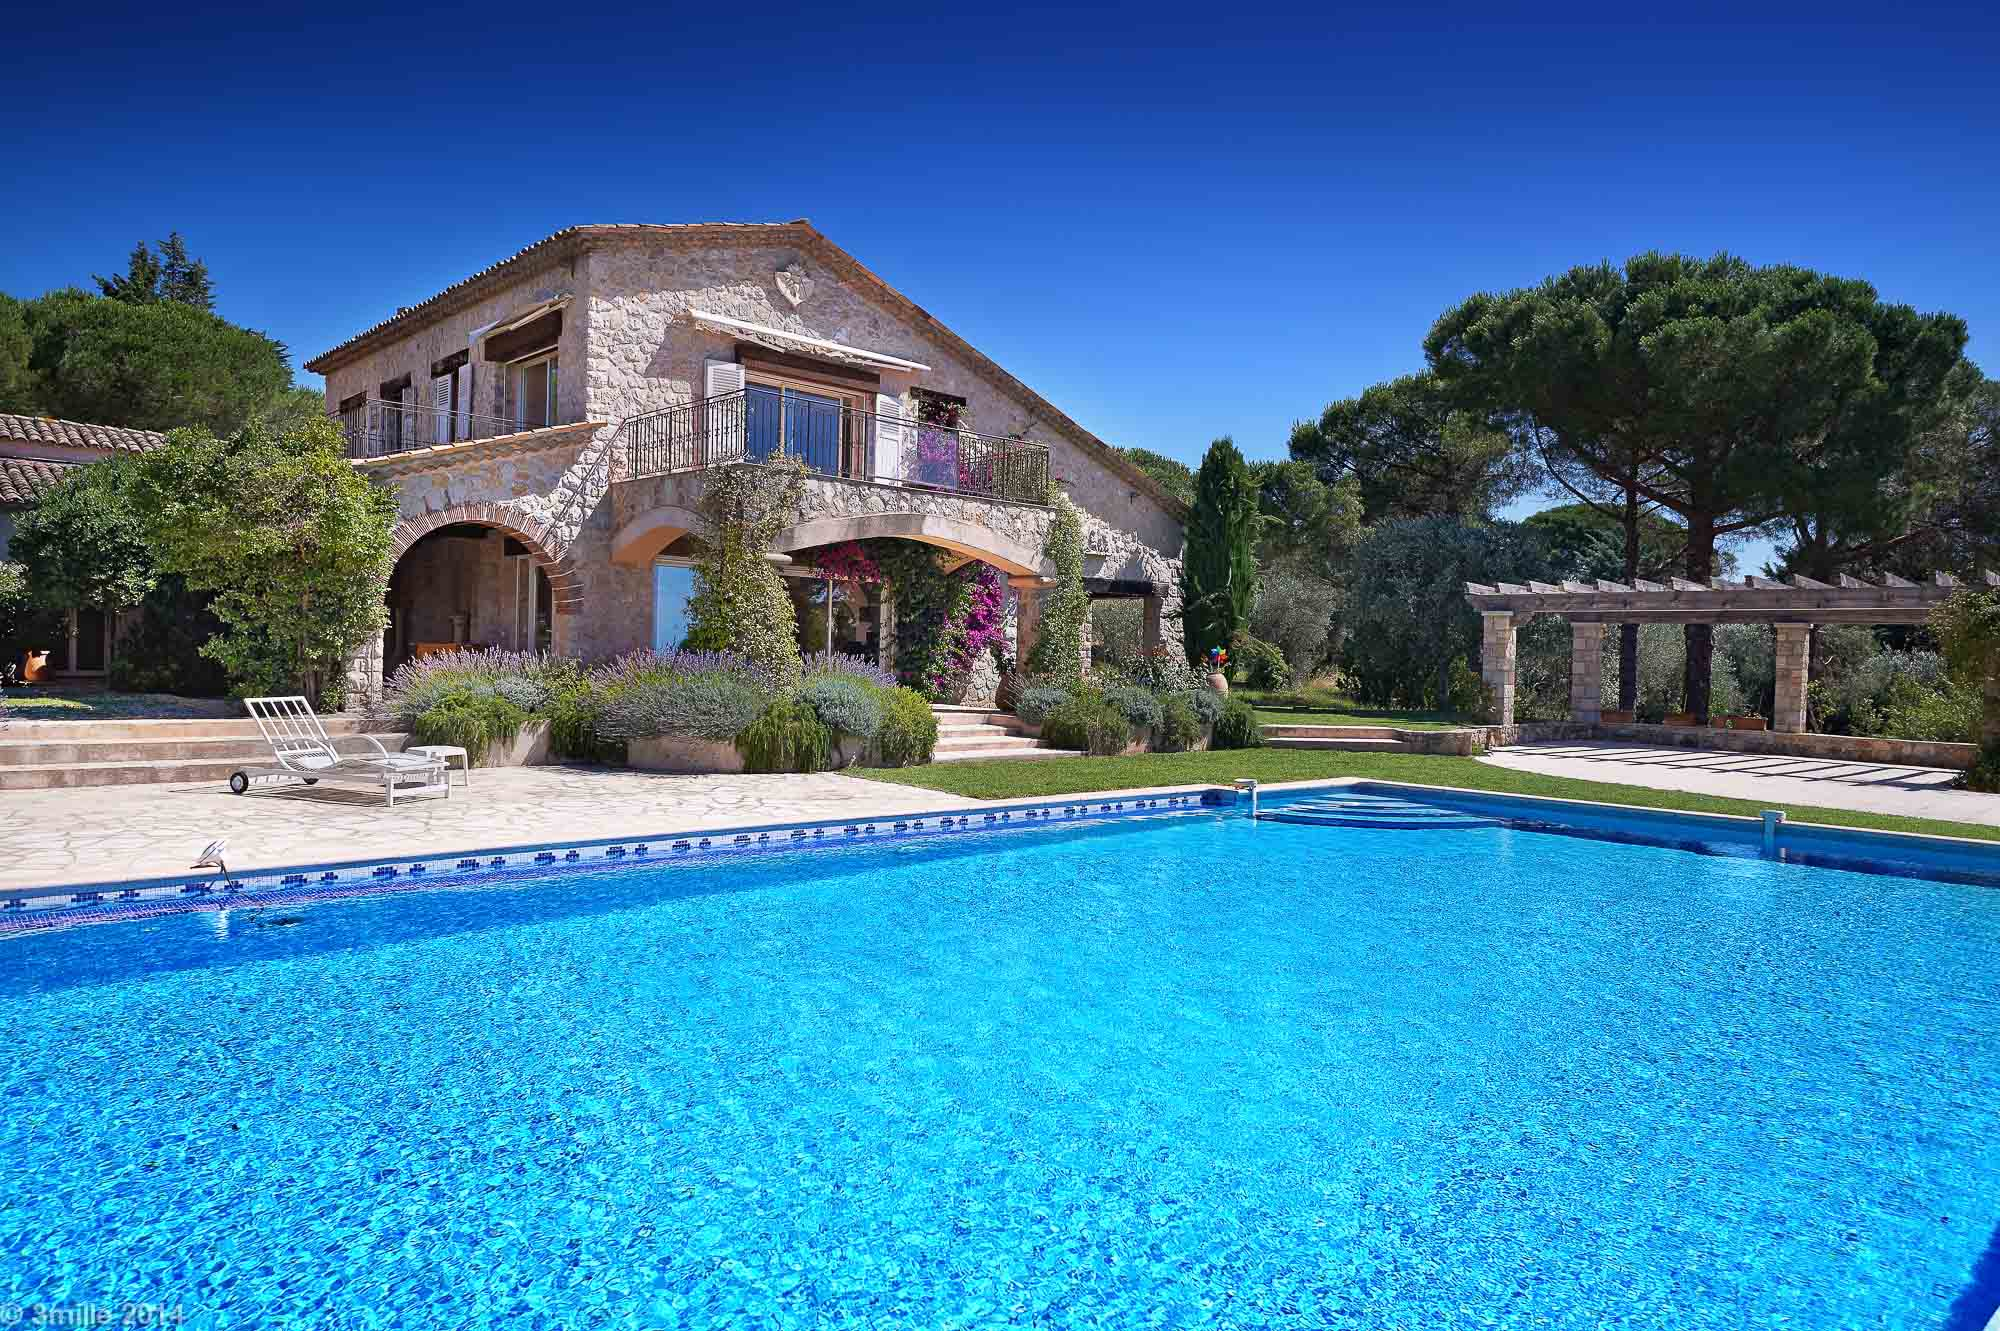 Single Family Home for Sale at Property of 15ha with amazing sea views in the hinterland of Cannes Grasse, Provence-Alpes-Cote D'Azur 06130 France